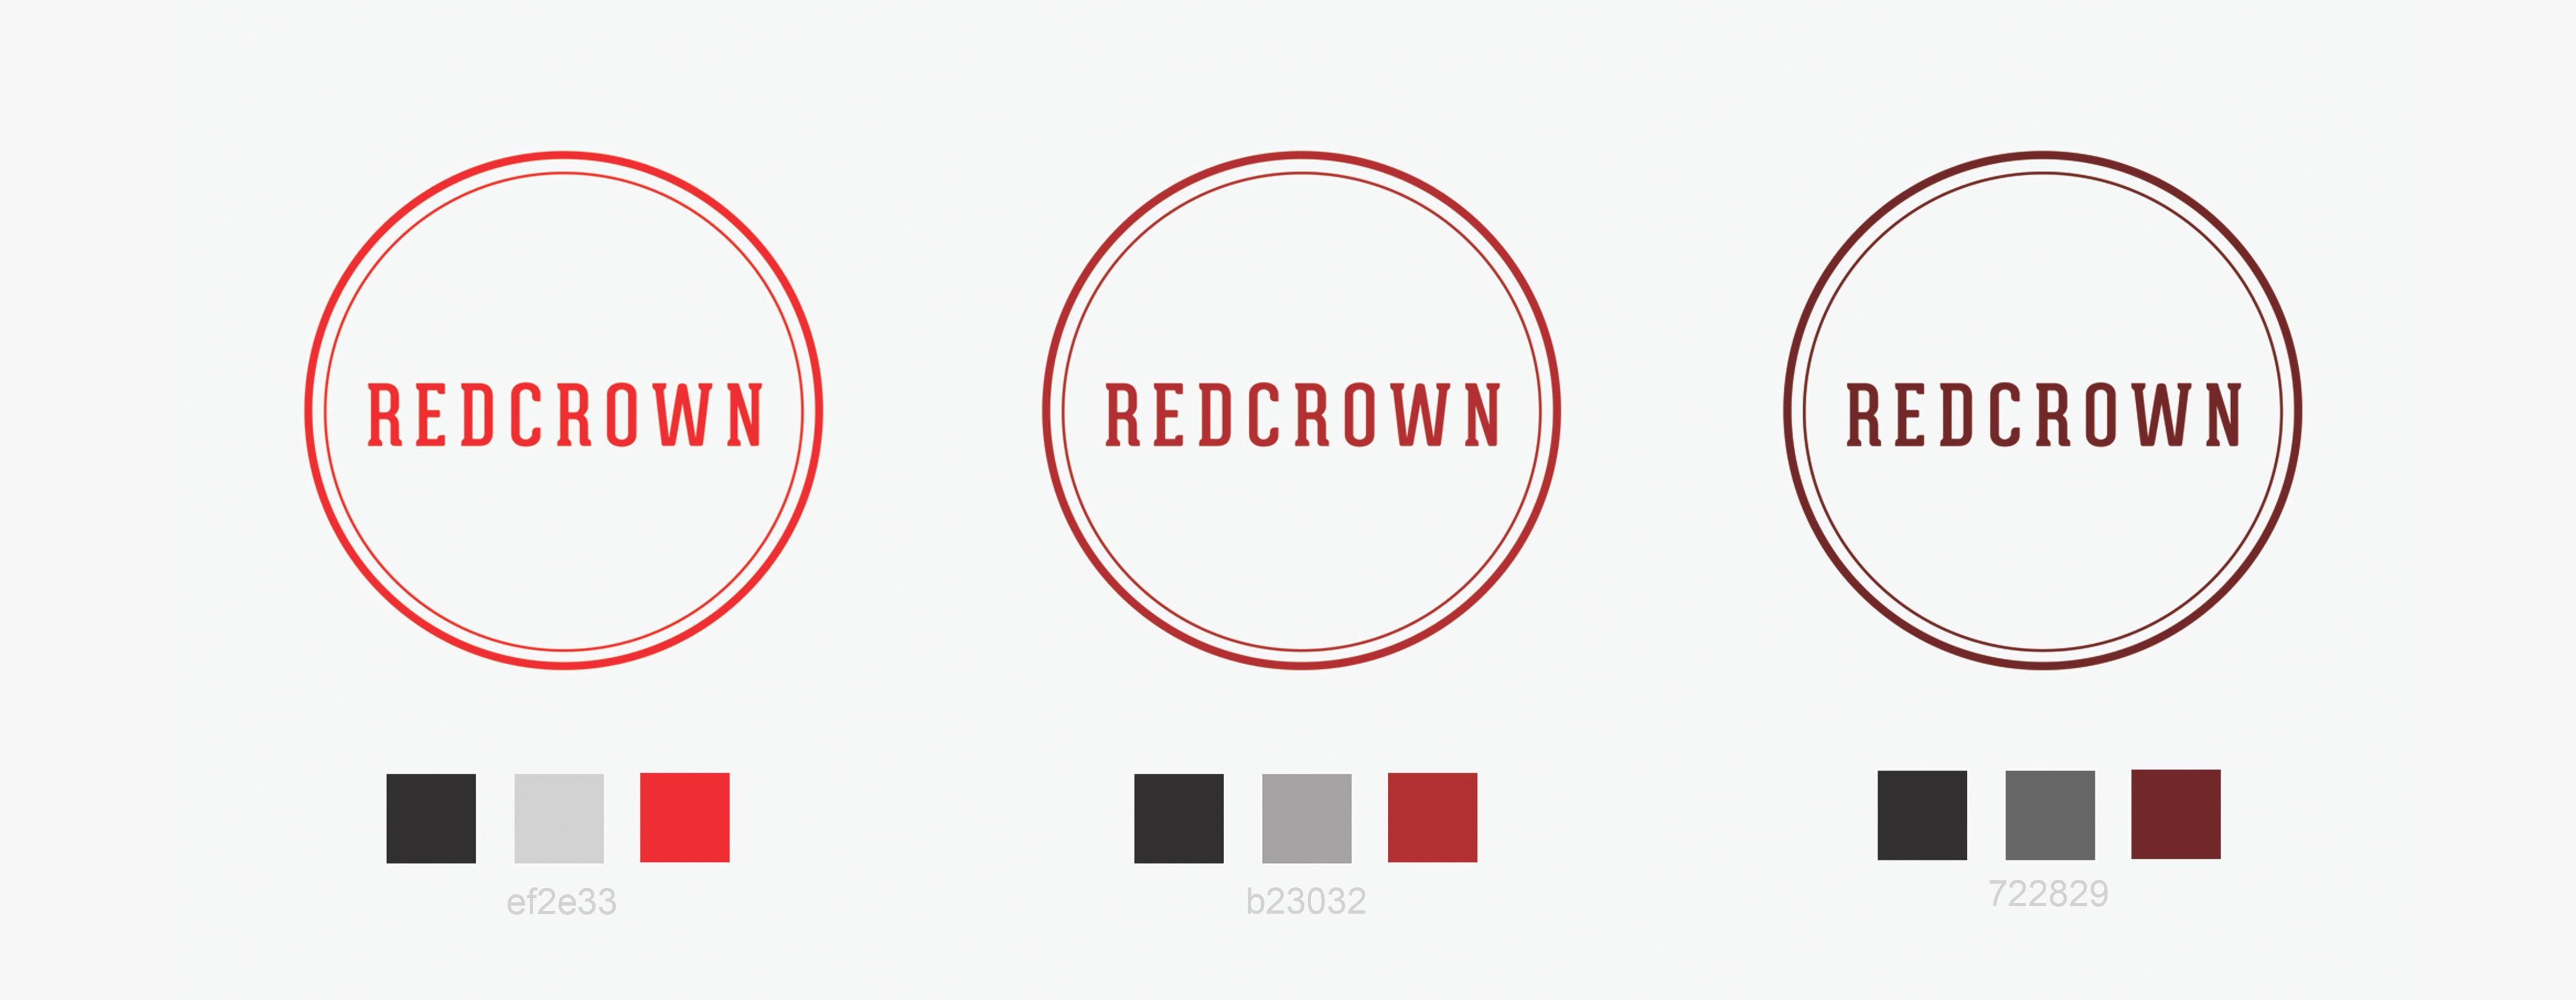 RedCrown -  Canada - image 7 - student project